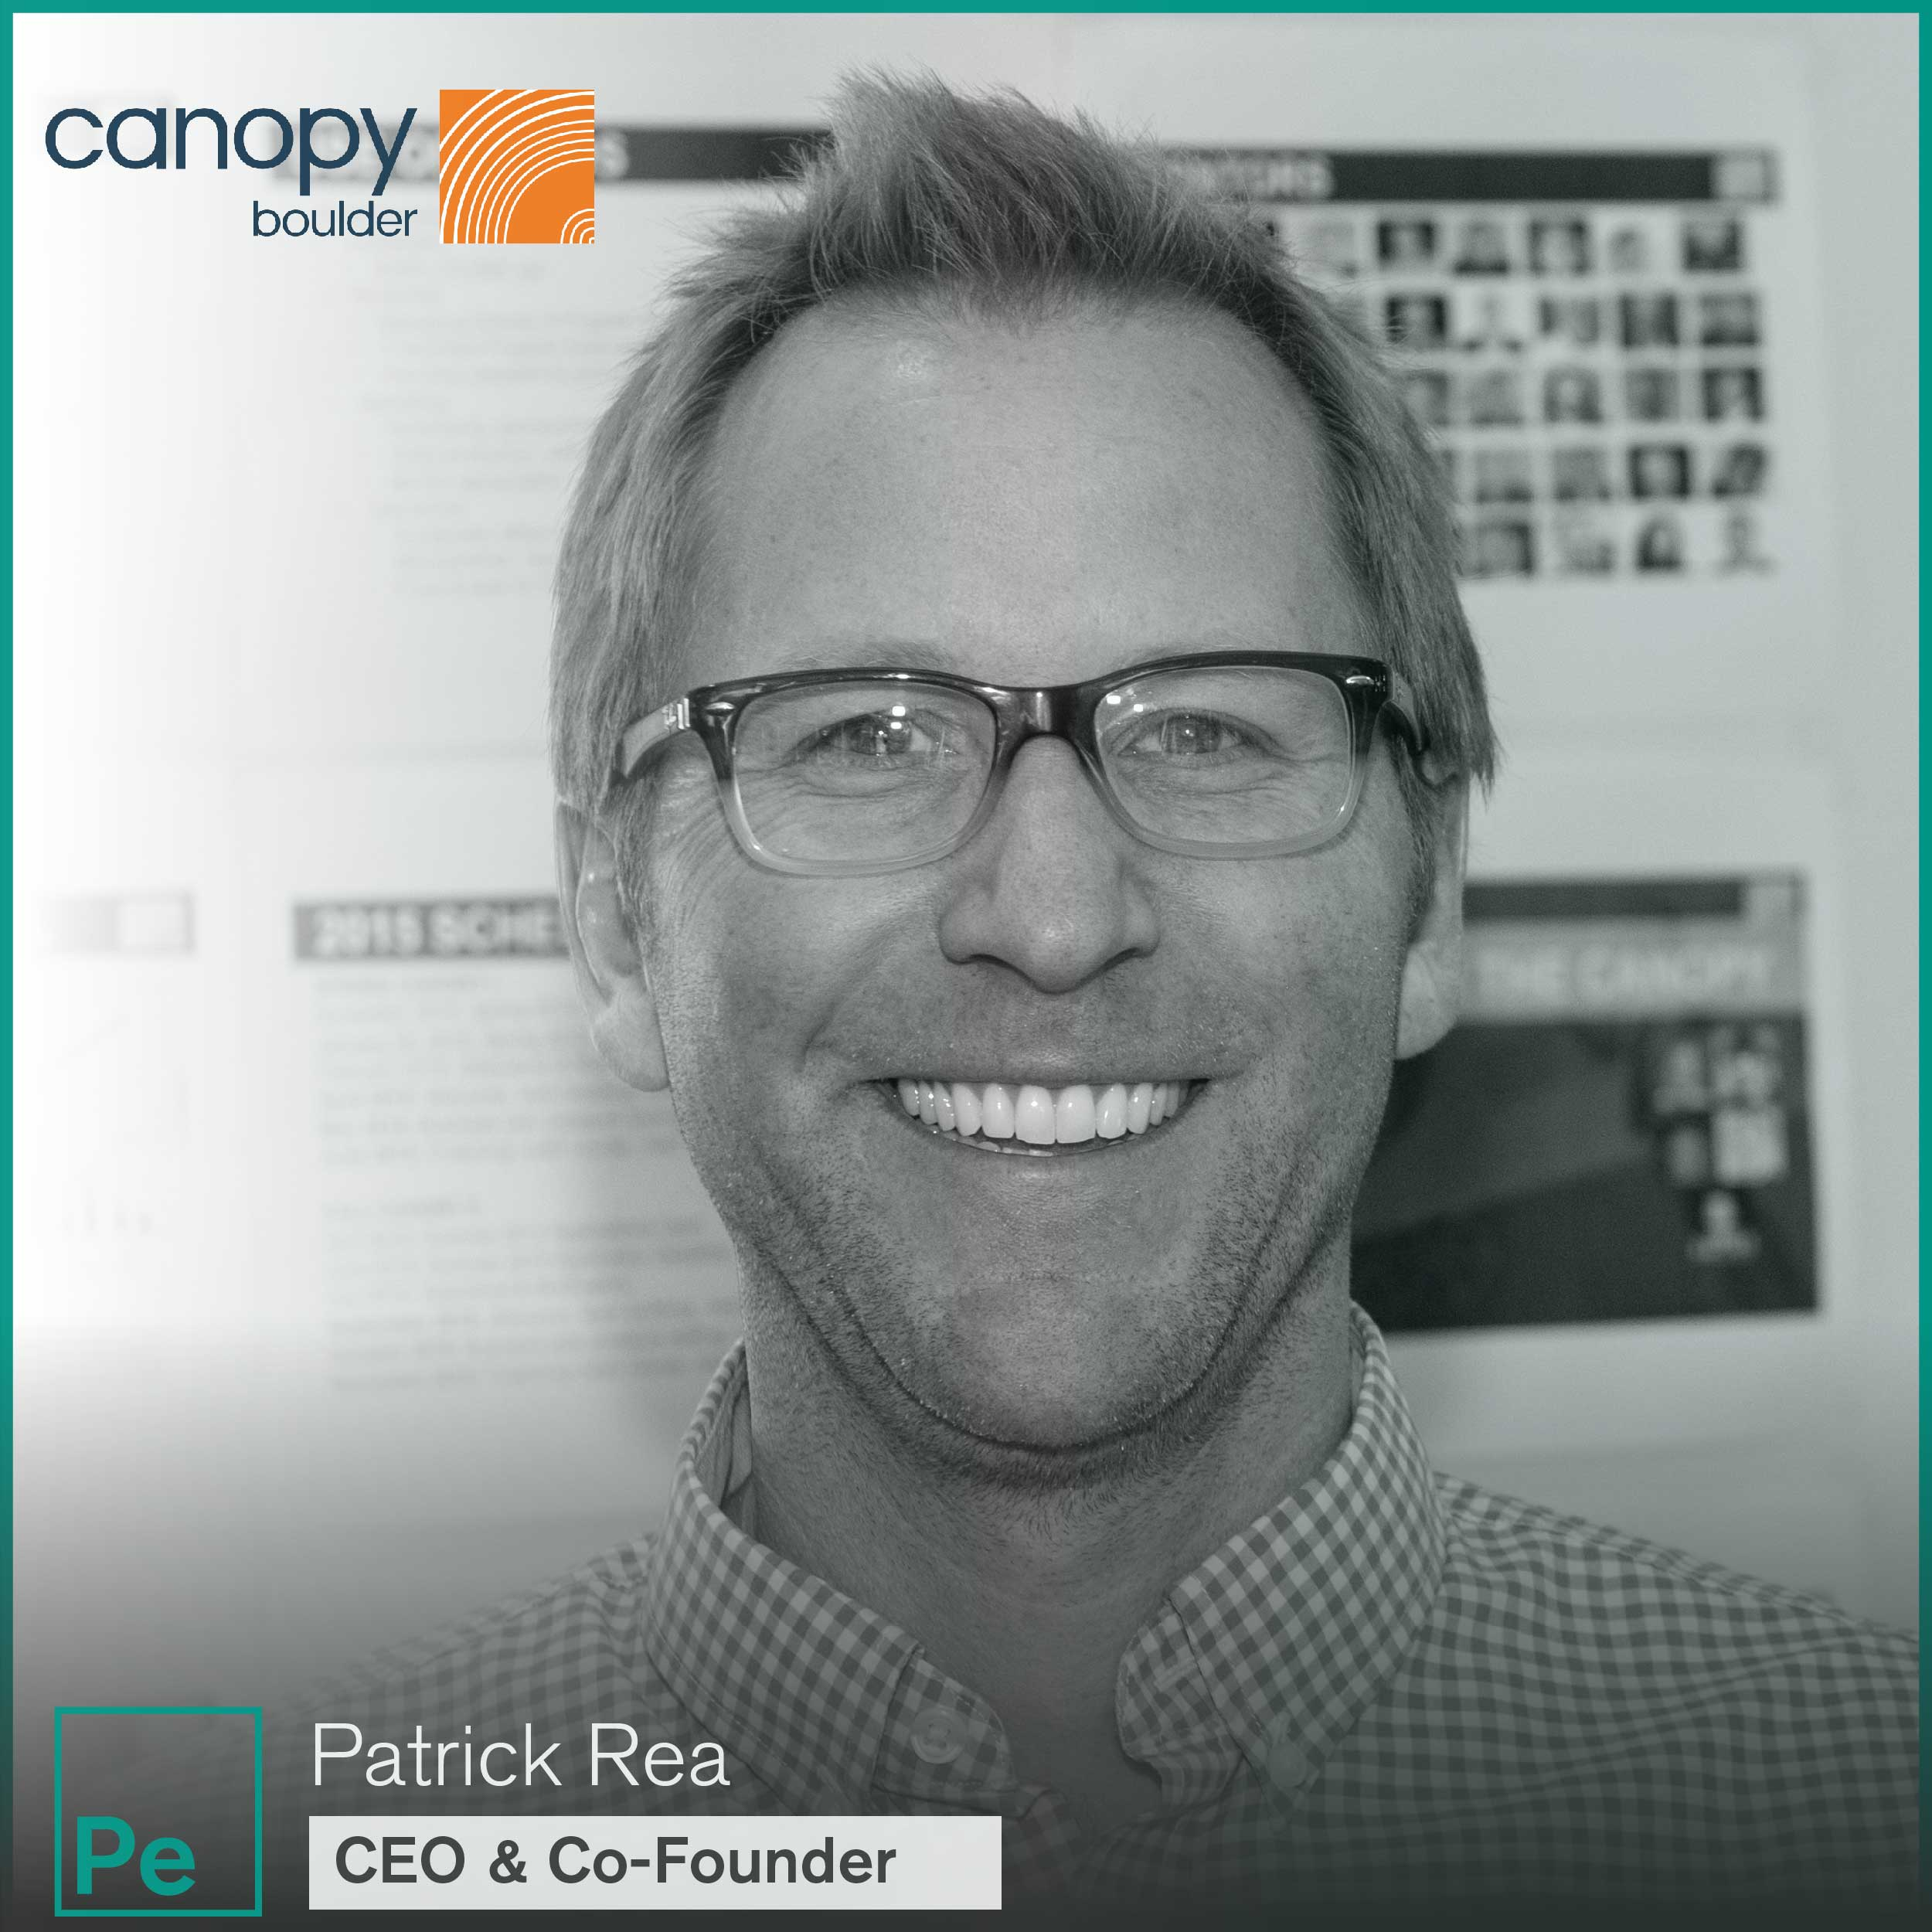 Patrick Rea, CEO and Co-Founder of Canopy Boulder, a cannabis accelerator investing in cannabis companies at the seed stage.